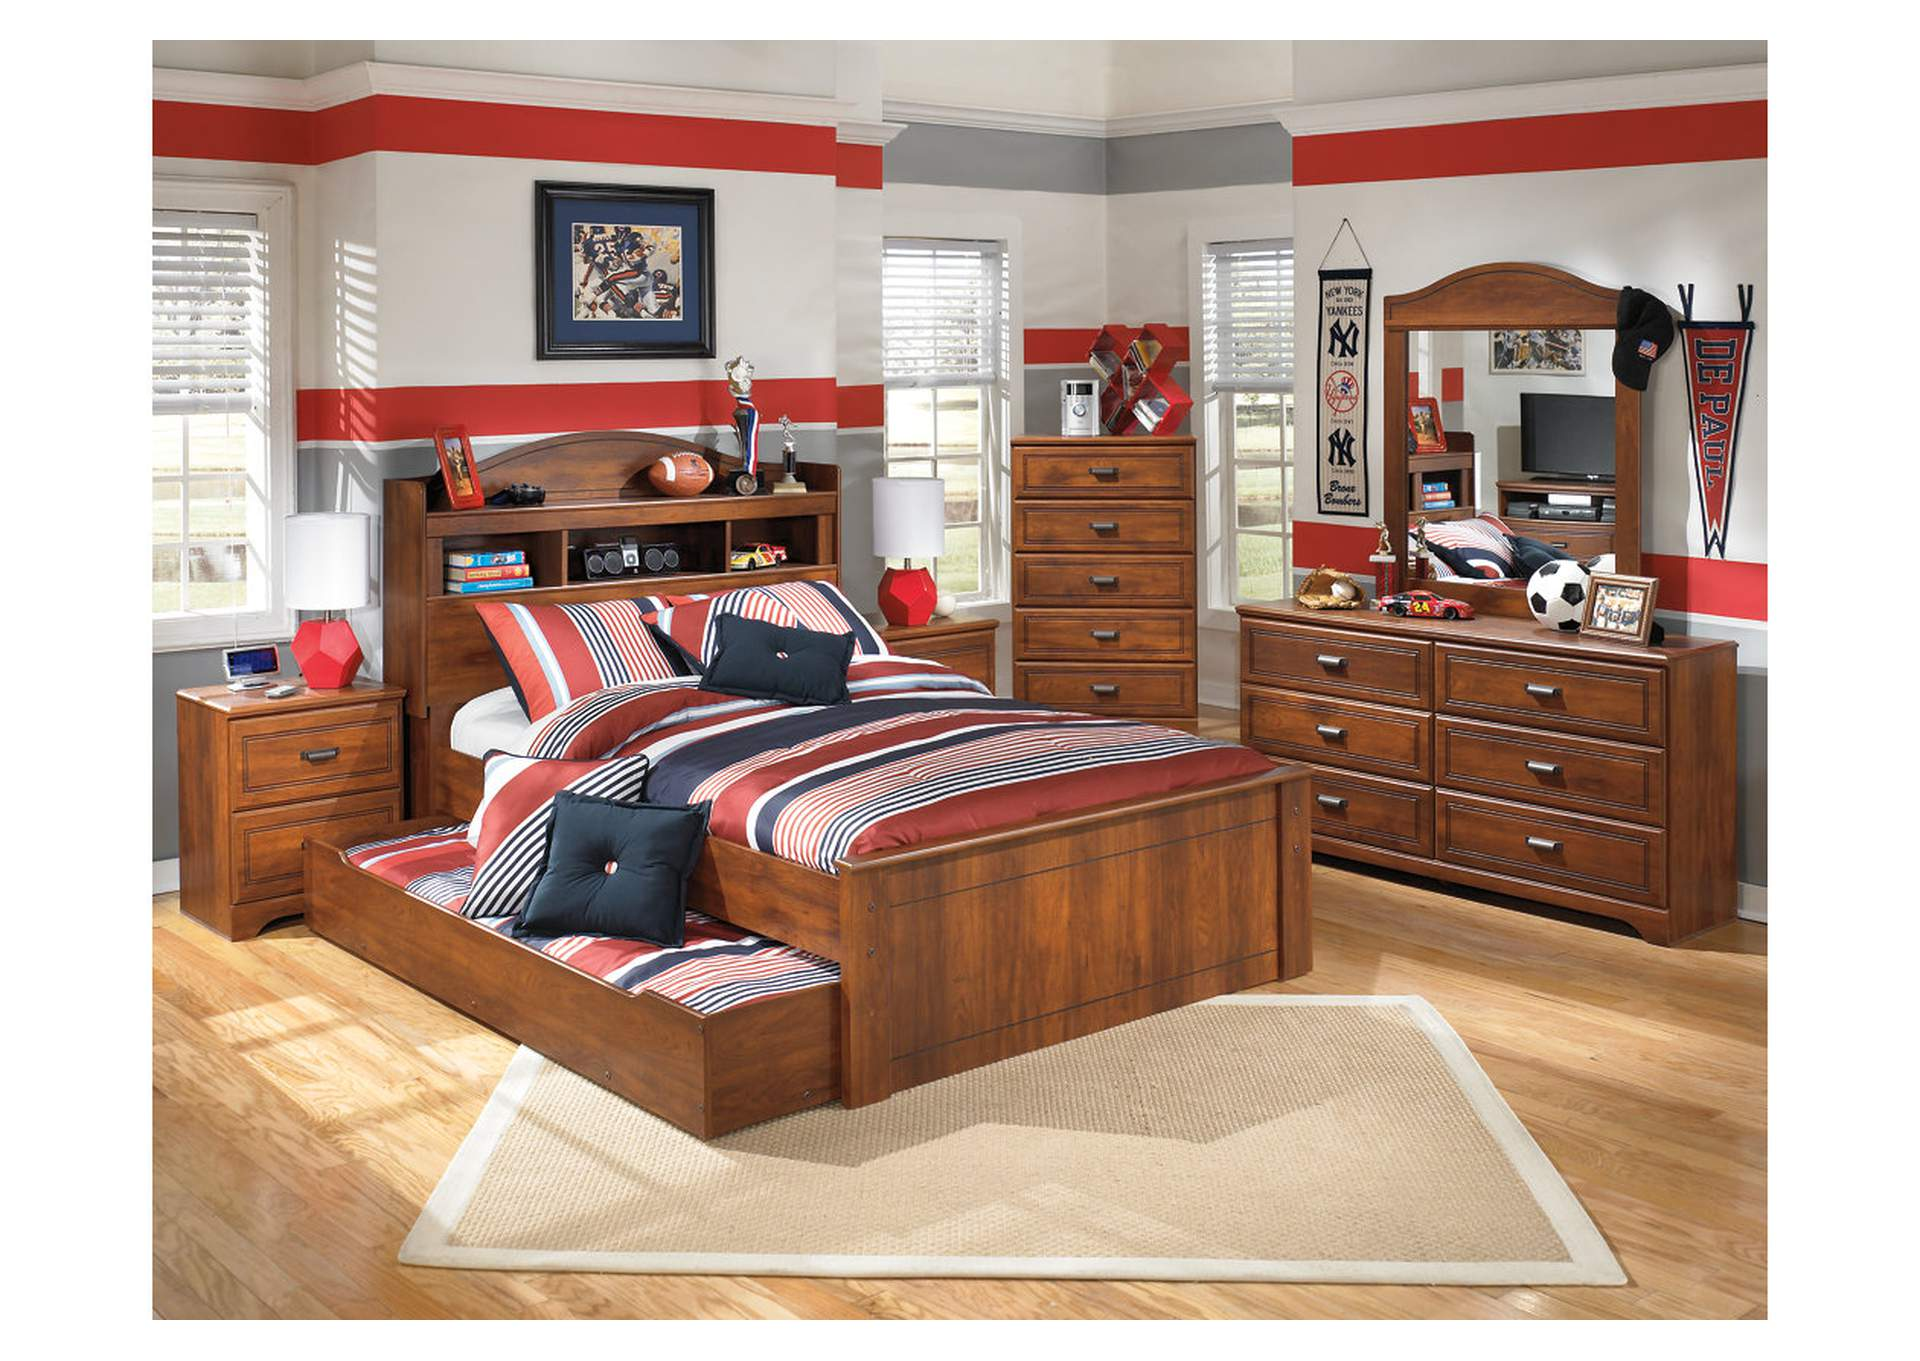 Barchan Full Bookcase Bed w/ Trundle, Dresser & Mirror,Signature Design By Ashley